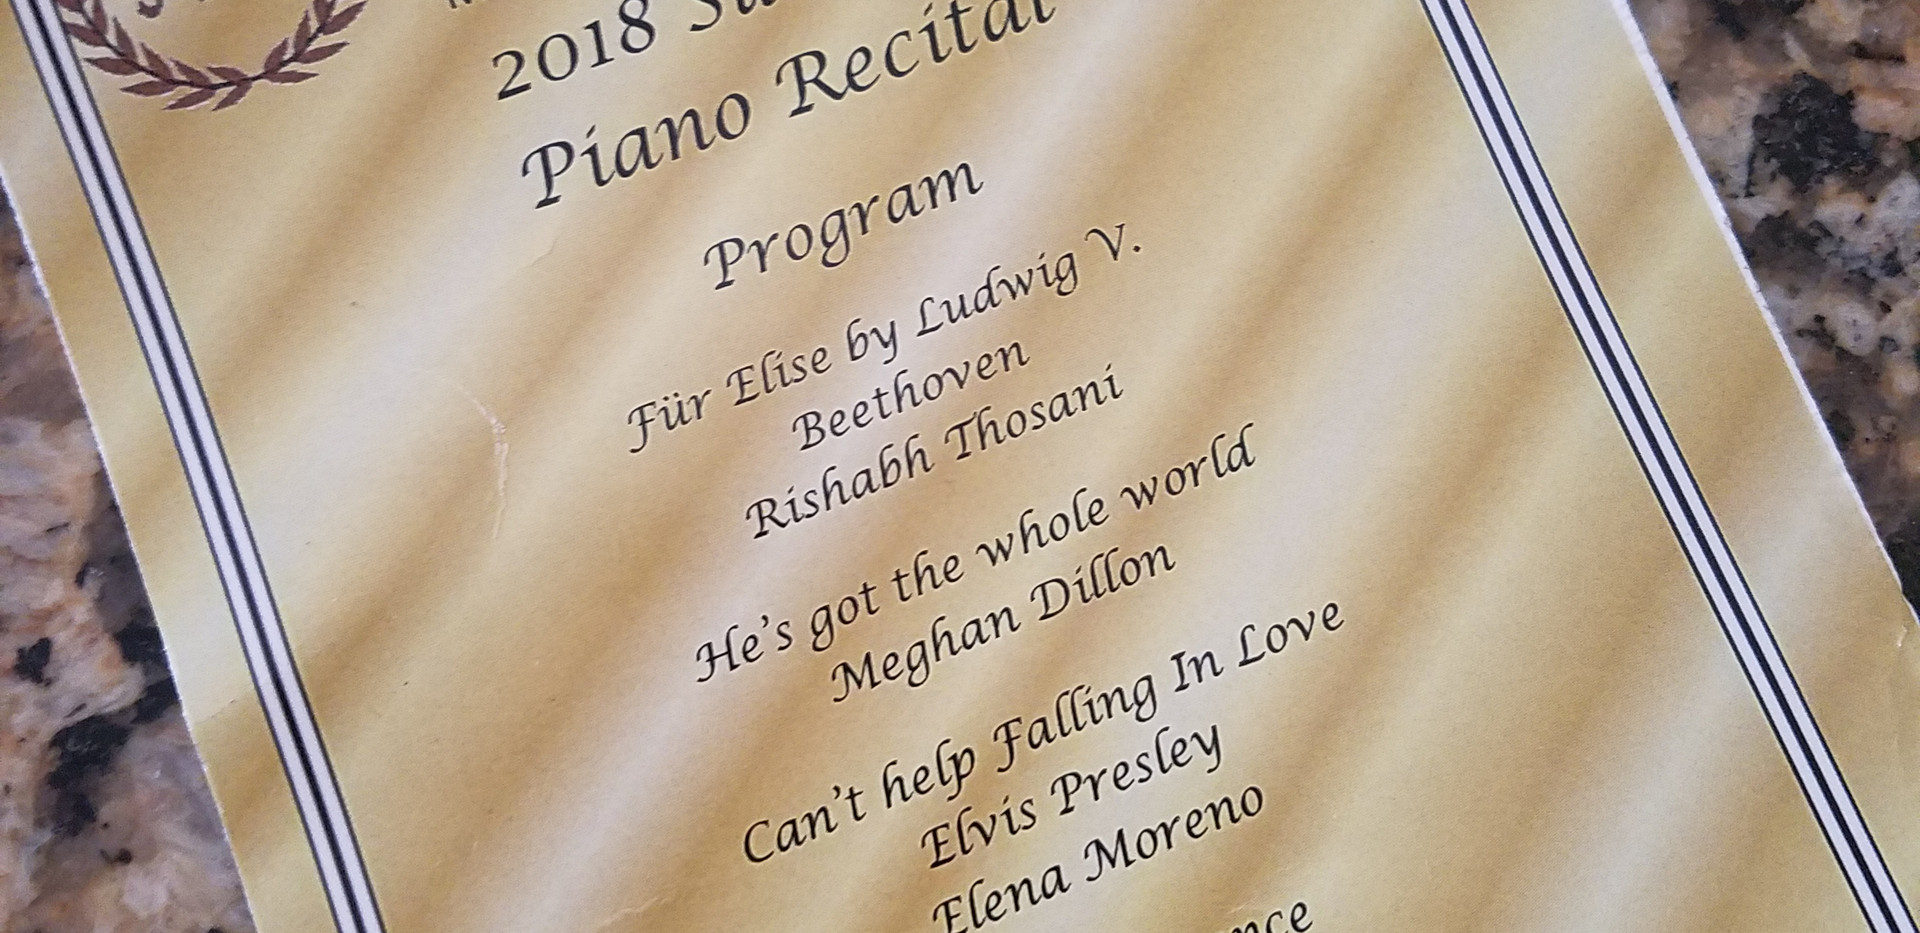 2018 Summer Piano Recital